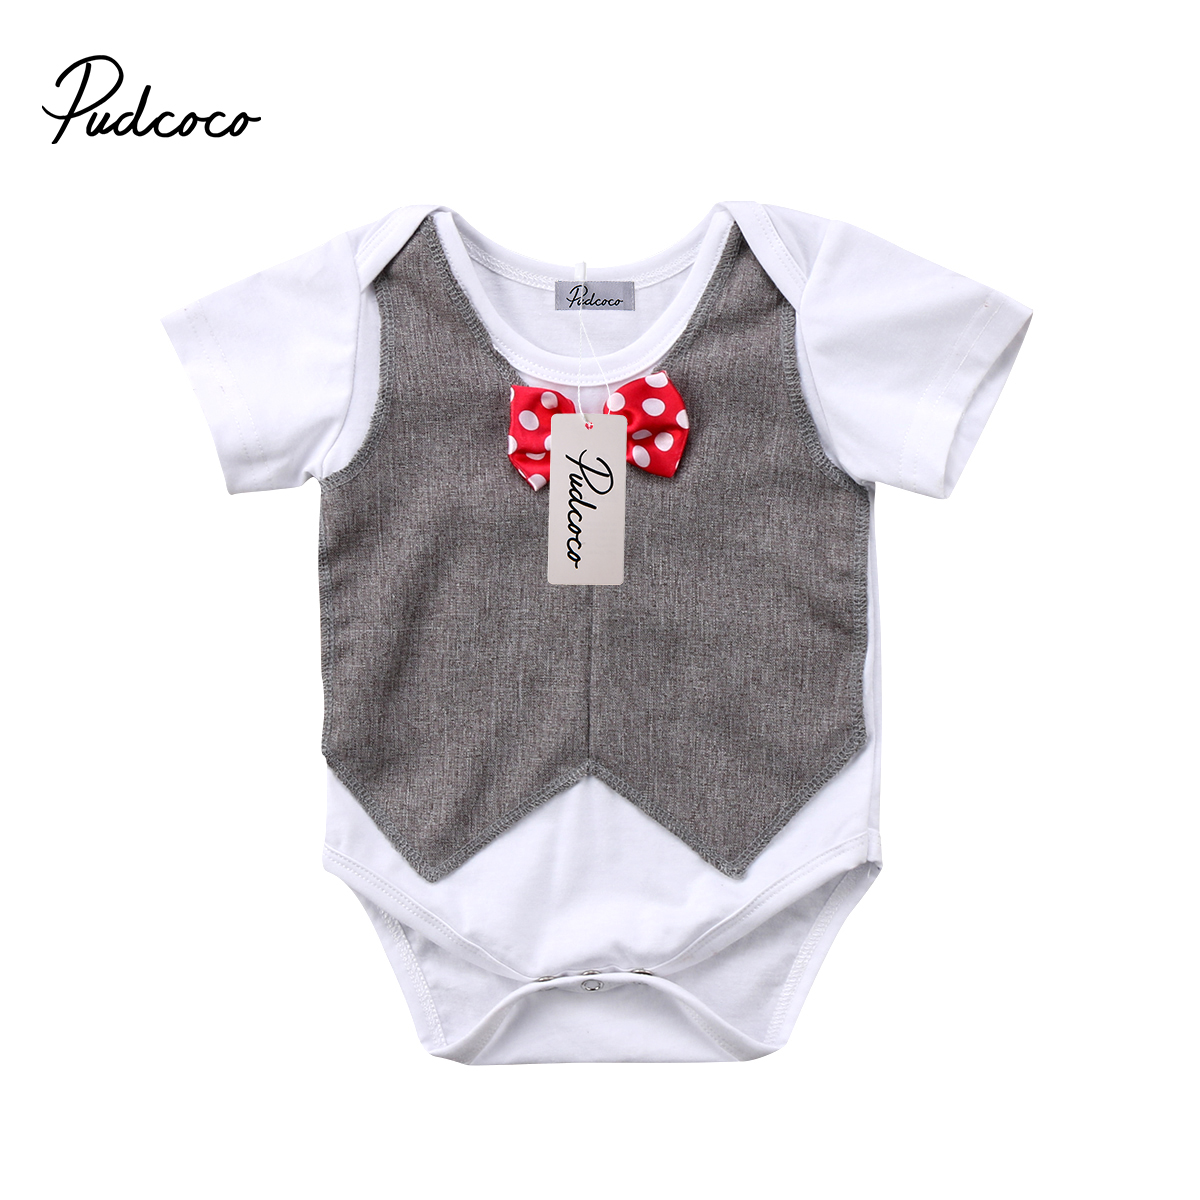 HOT Adorable Romper Toddler Baby Boy Gentleman Romper Boy Short Playsuit Outfit Clothes One Pieces gentlemen style striped baby boy romper playsuit